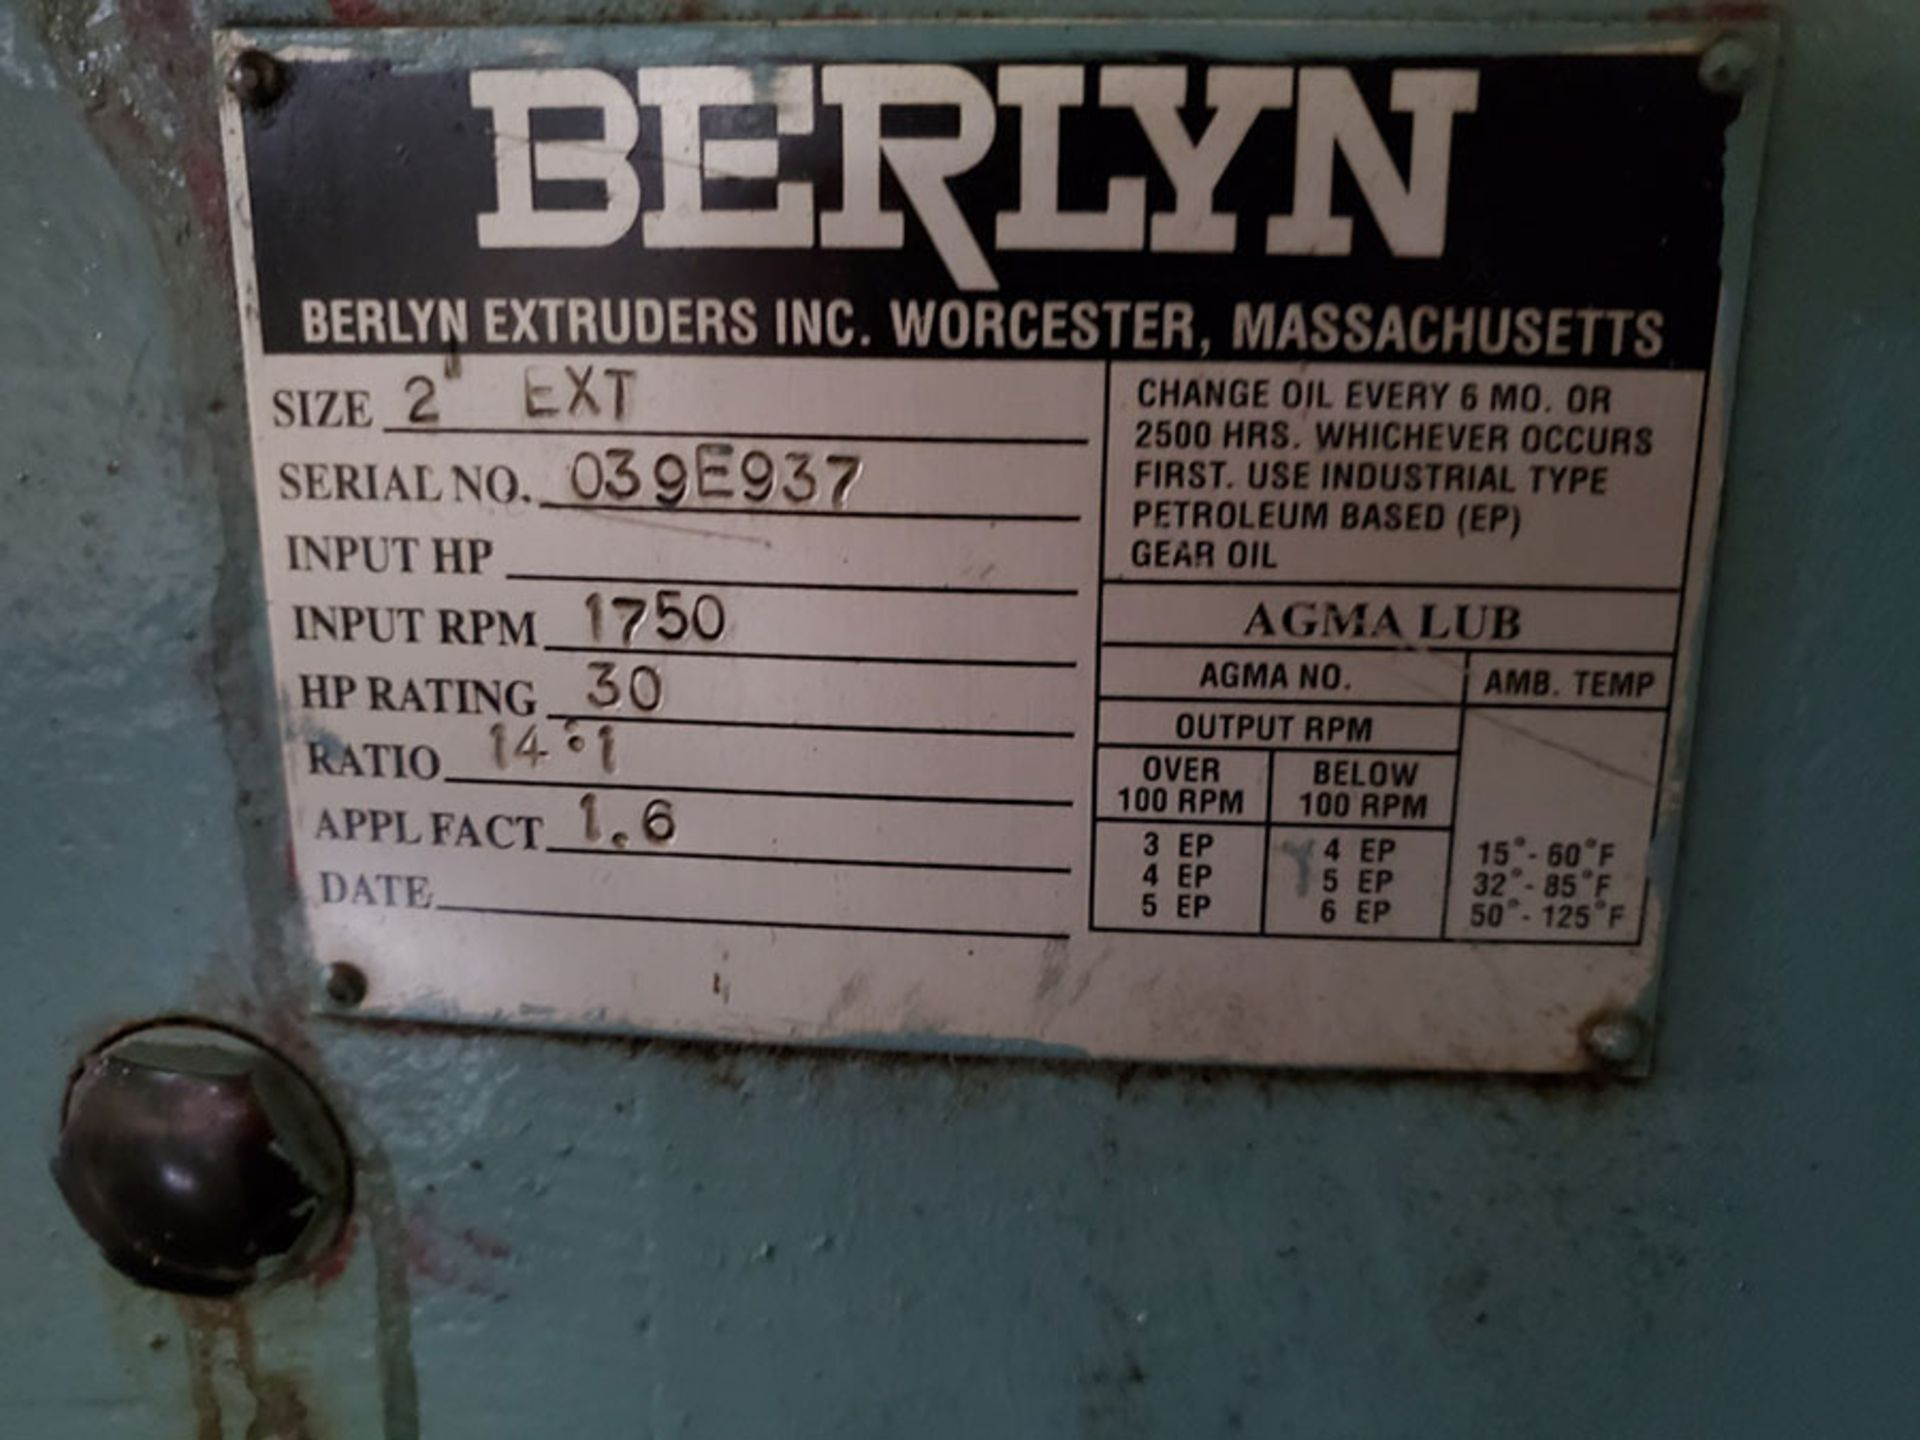 Lot 185 - BERLYN EXTRUDER; S/N 039E937, 1750 RPM INPUT, 30-HP RATING, SIZE 2 EXT.